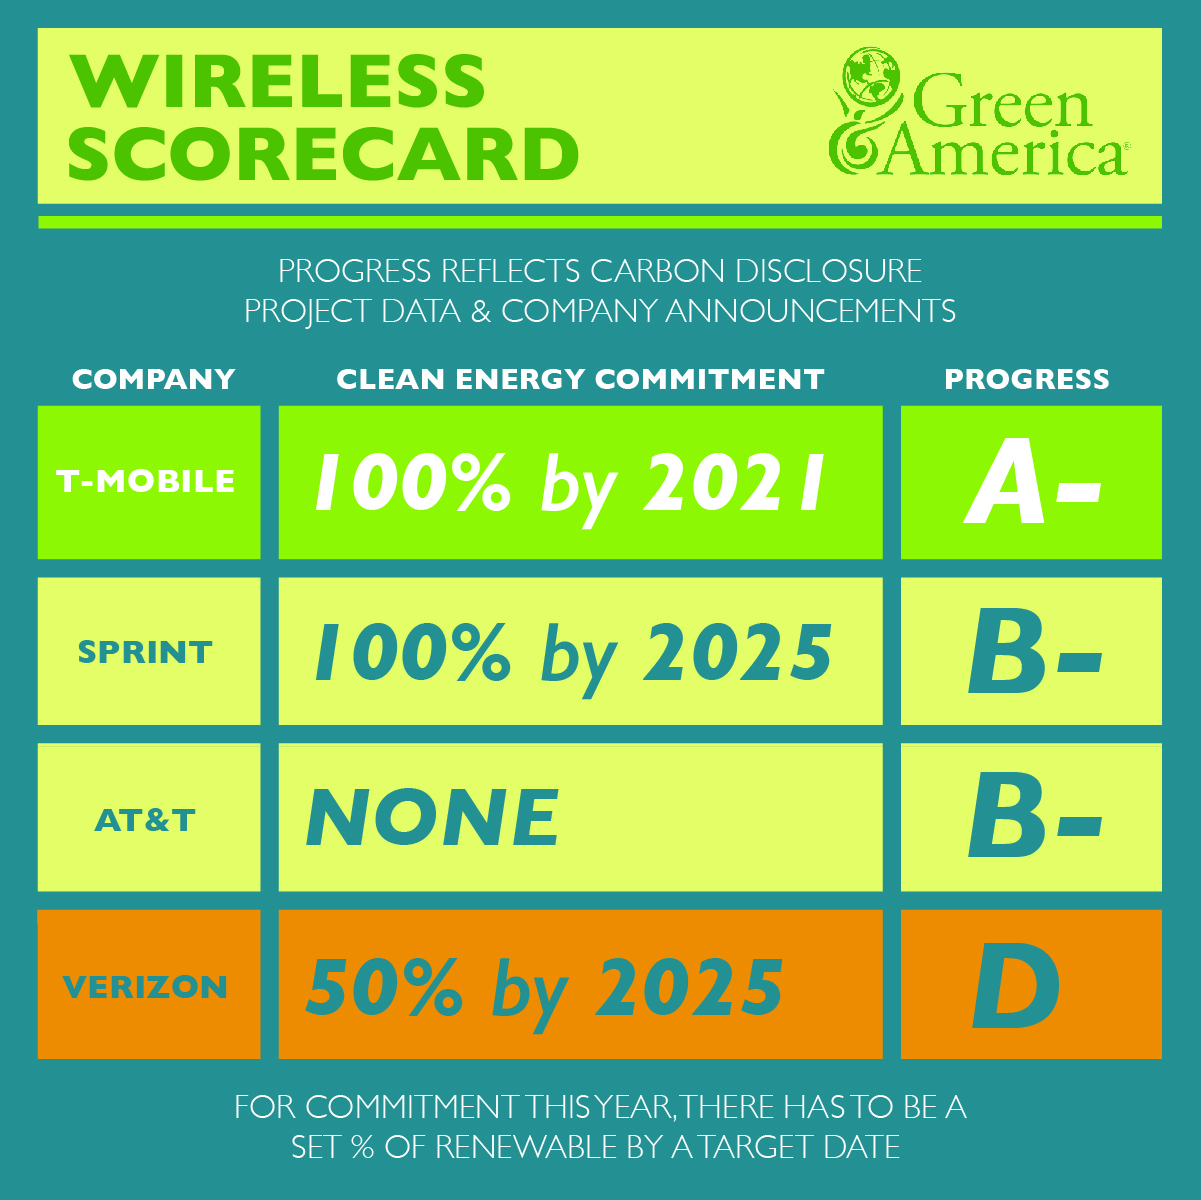 Wireless Scorecard that shows telecoms in the following order and grade: T-Mobile with a 100% by 2021 commitment to clean energy which earns an A- on actual clean energy progress. Sprint earns a B- with its progress and its commitment to reach 100% clean energy by 2025. AT&T earns a B- for its actual progress, but it does not have any clean energy commitment. And Verizon earns a D, because while its commitment is 50% by 2025, it's actual progress is very low.